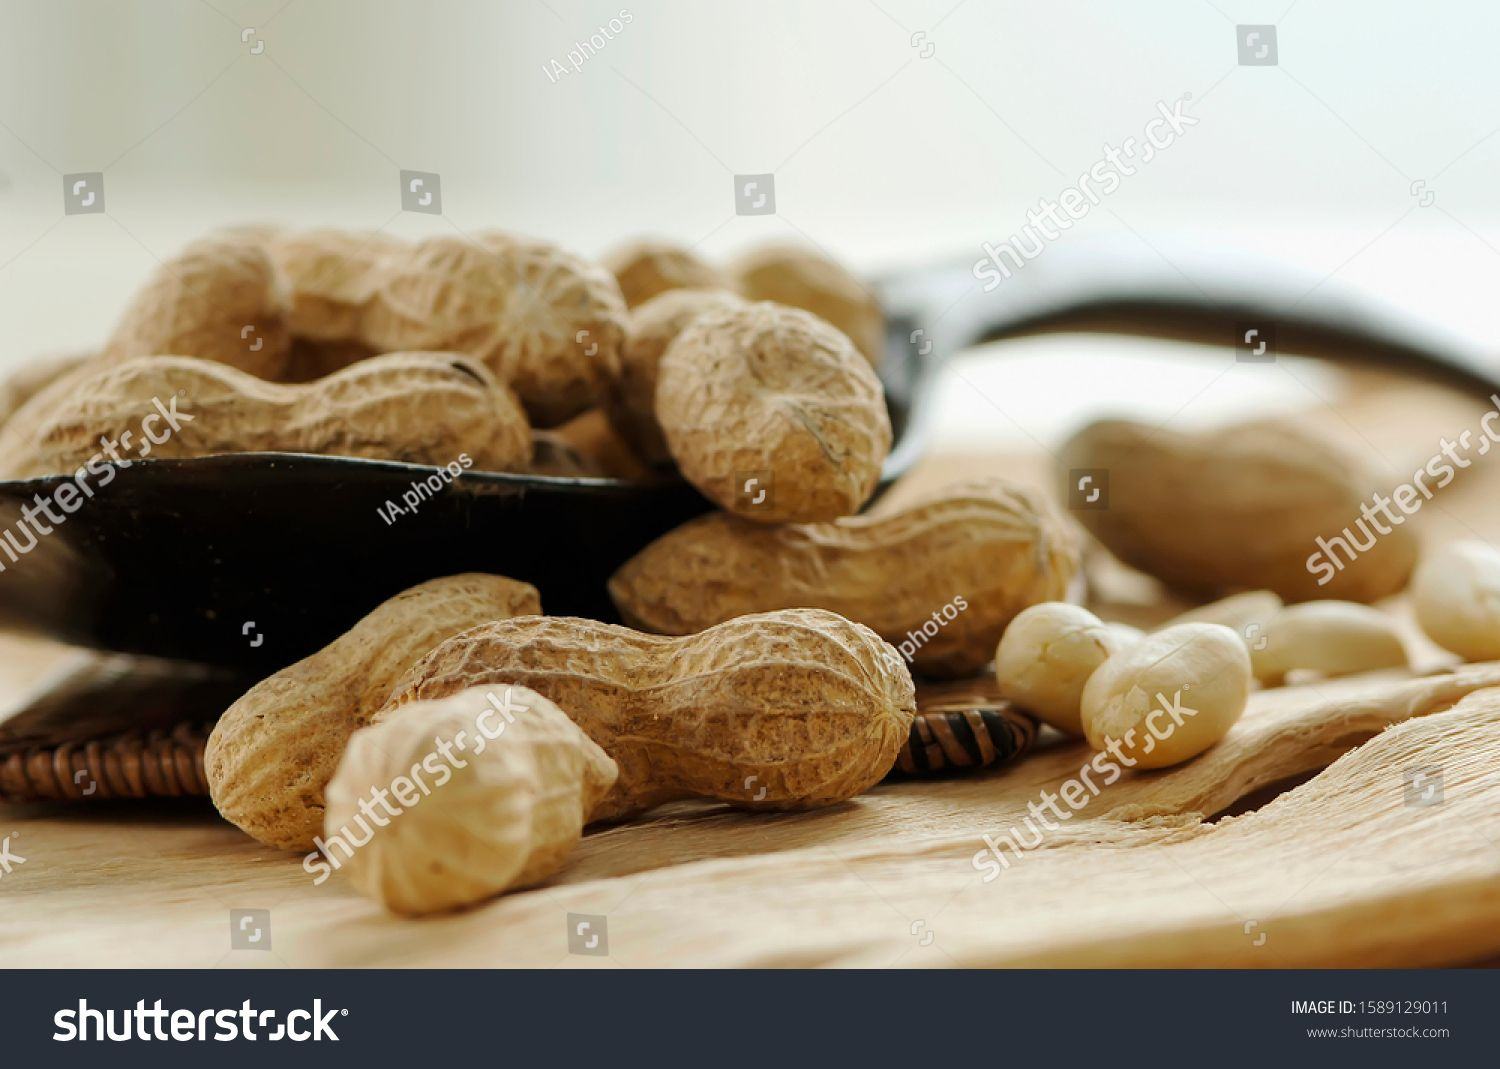 peanuts seeds on table with light background, peanuts seeds on light, Delicious food seeds, grains, Market photo, Food and Drink, health and medicare. #Sponsored , #affiliate, #background#Delicious#food#light